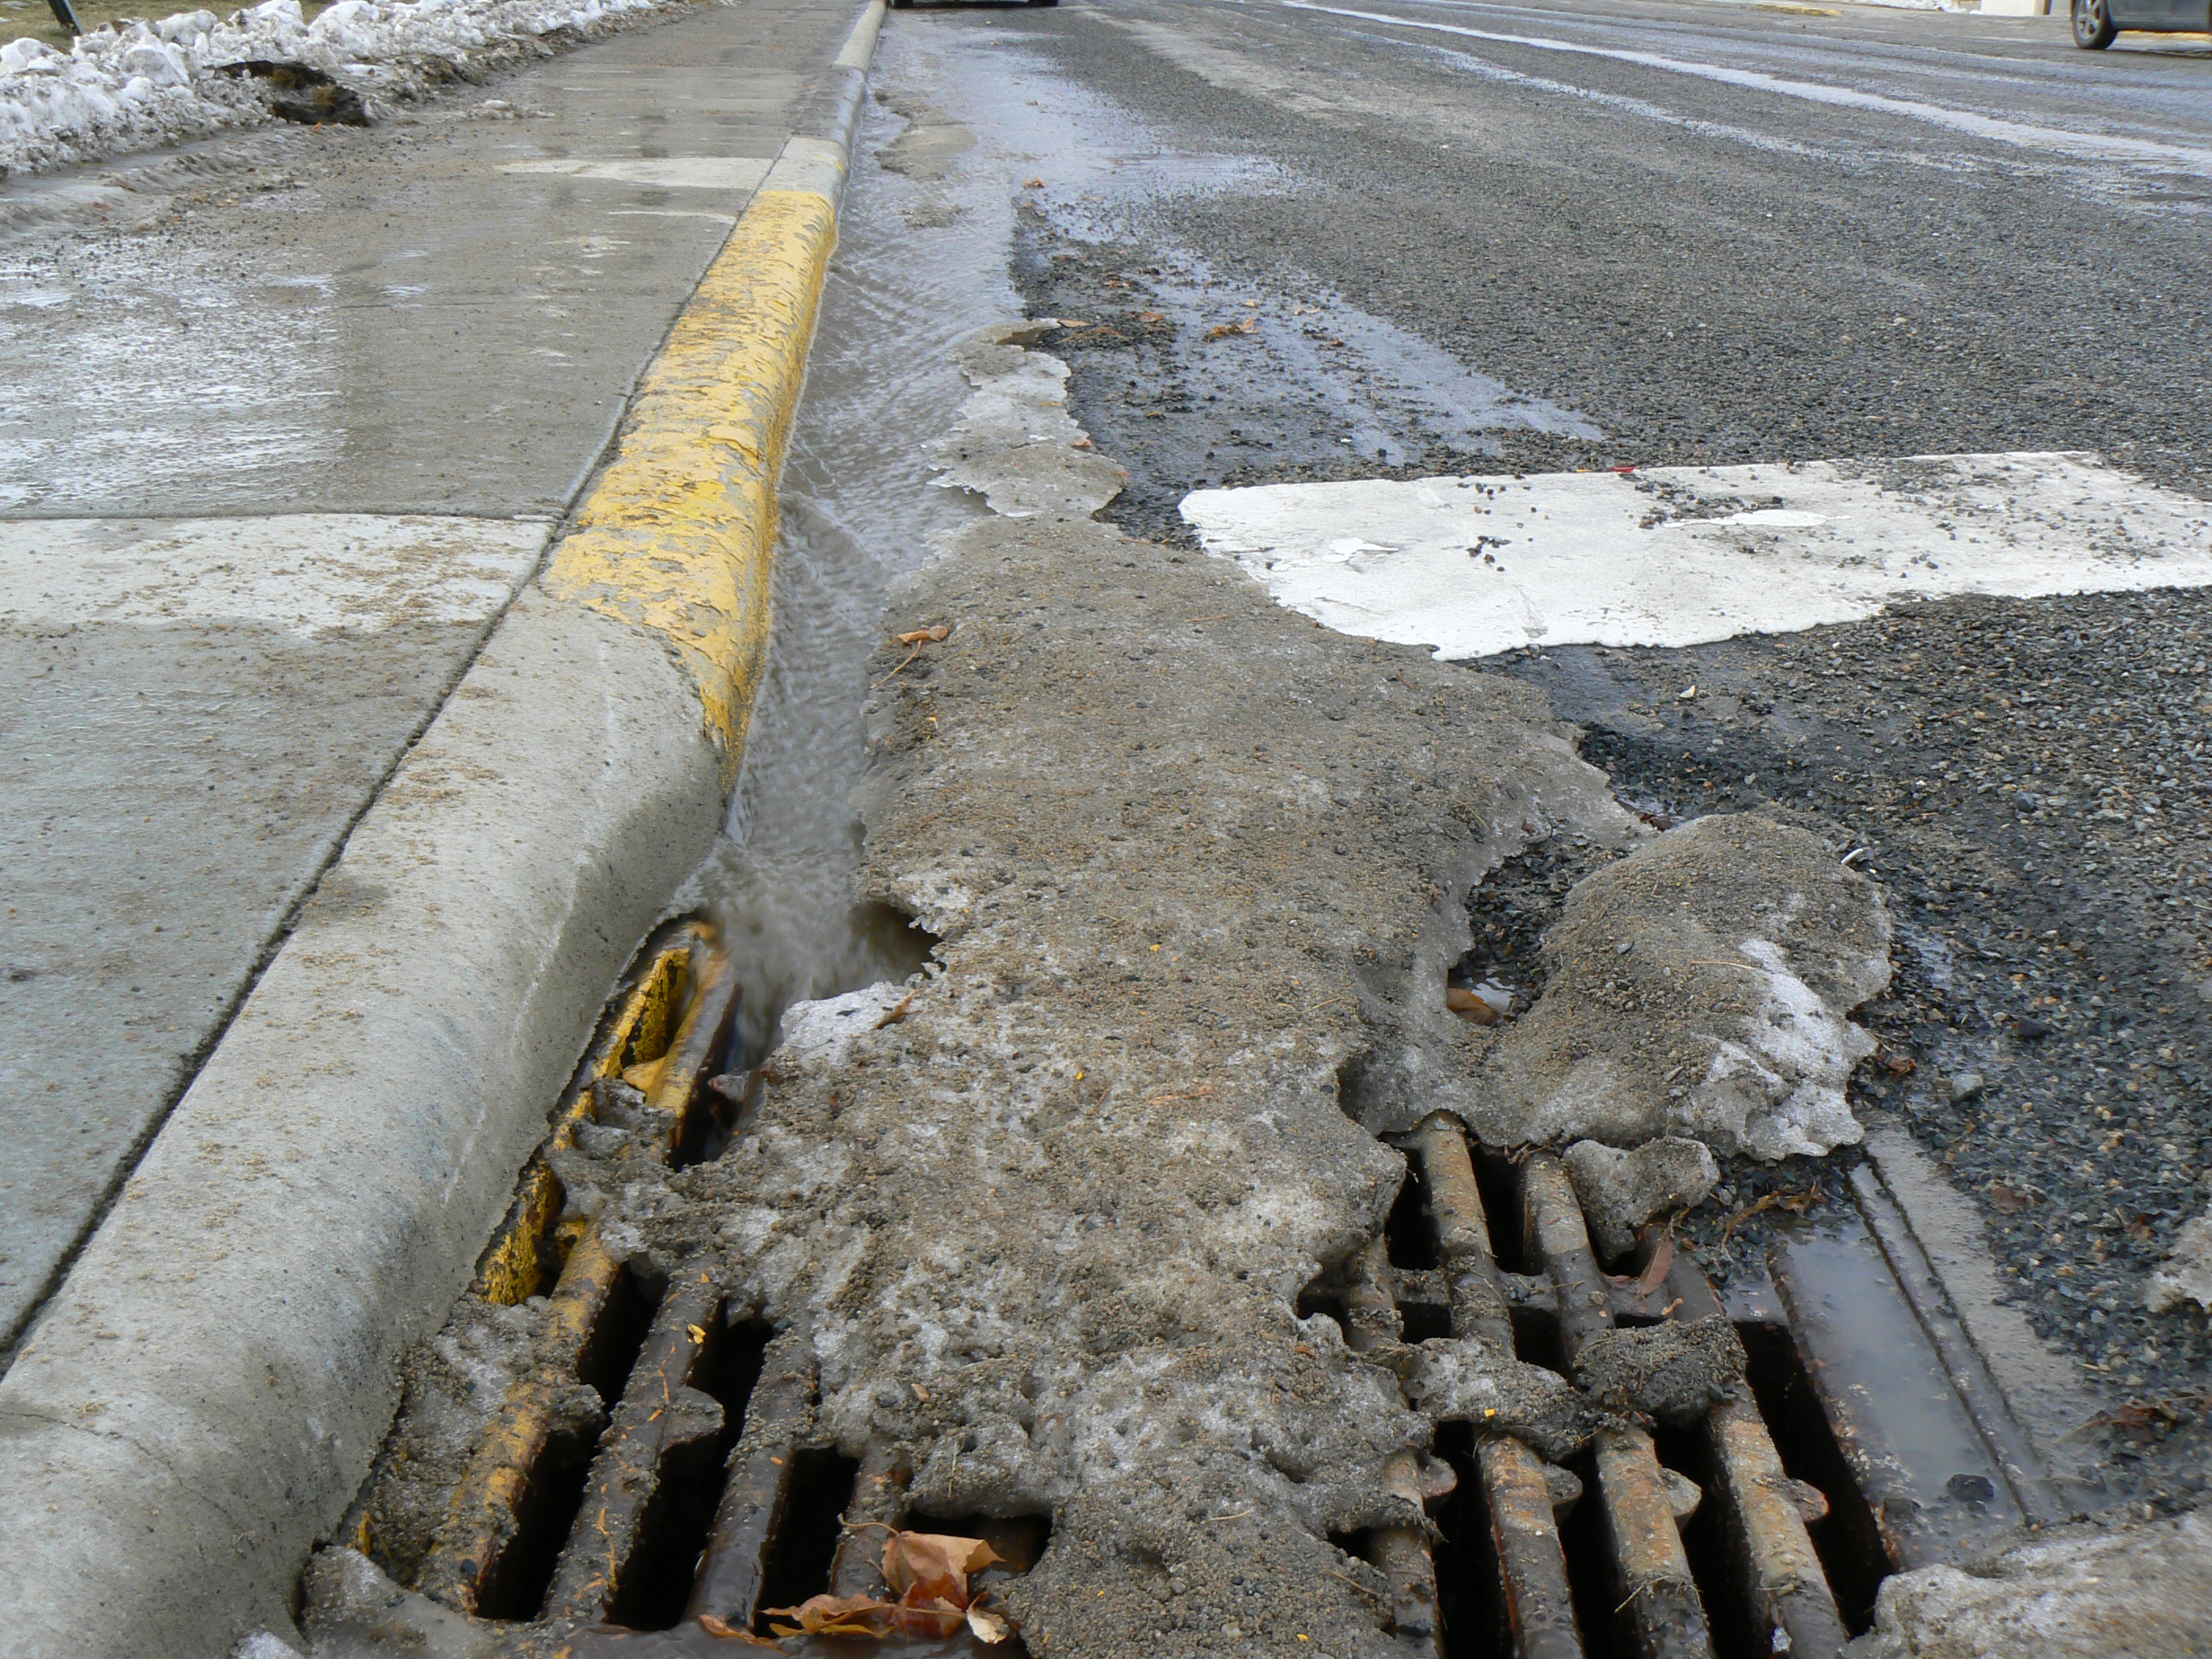 Polluted snow melts into sewer system